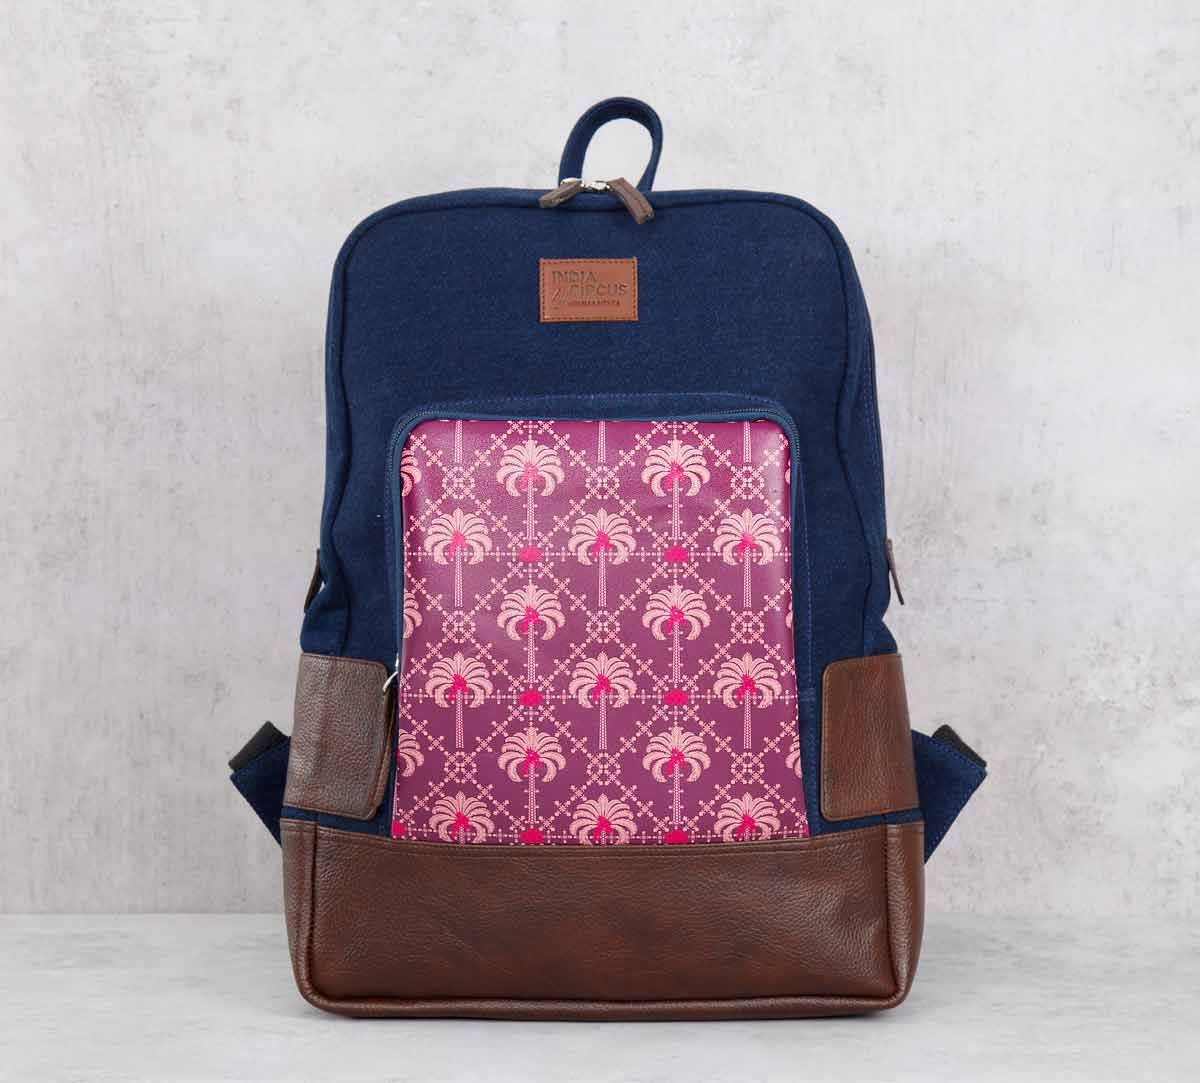 India Circus Poly Palmeria Denim Backpack